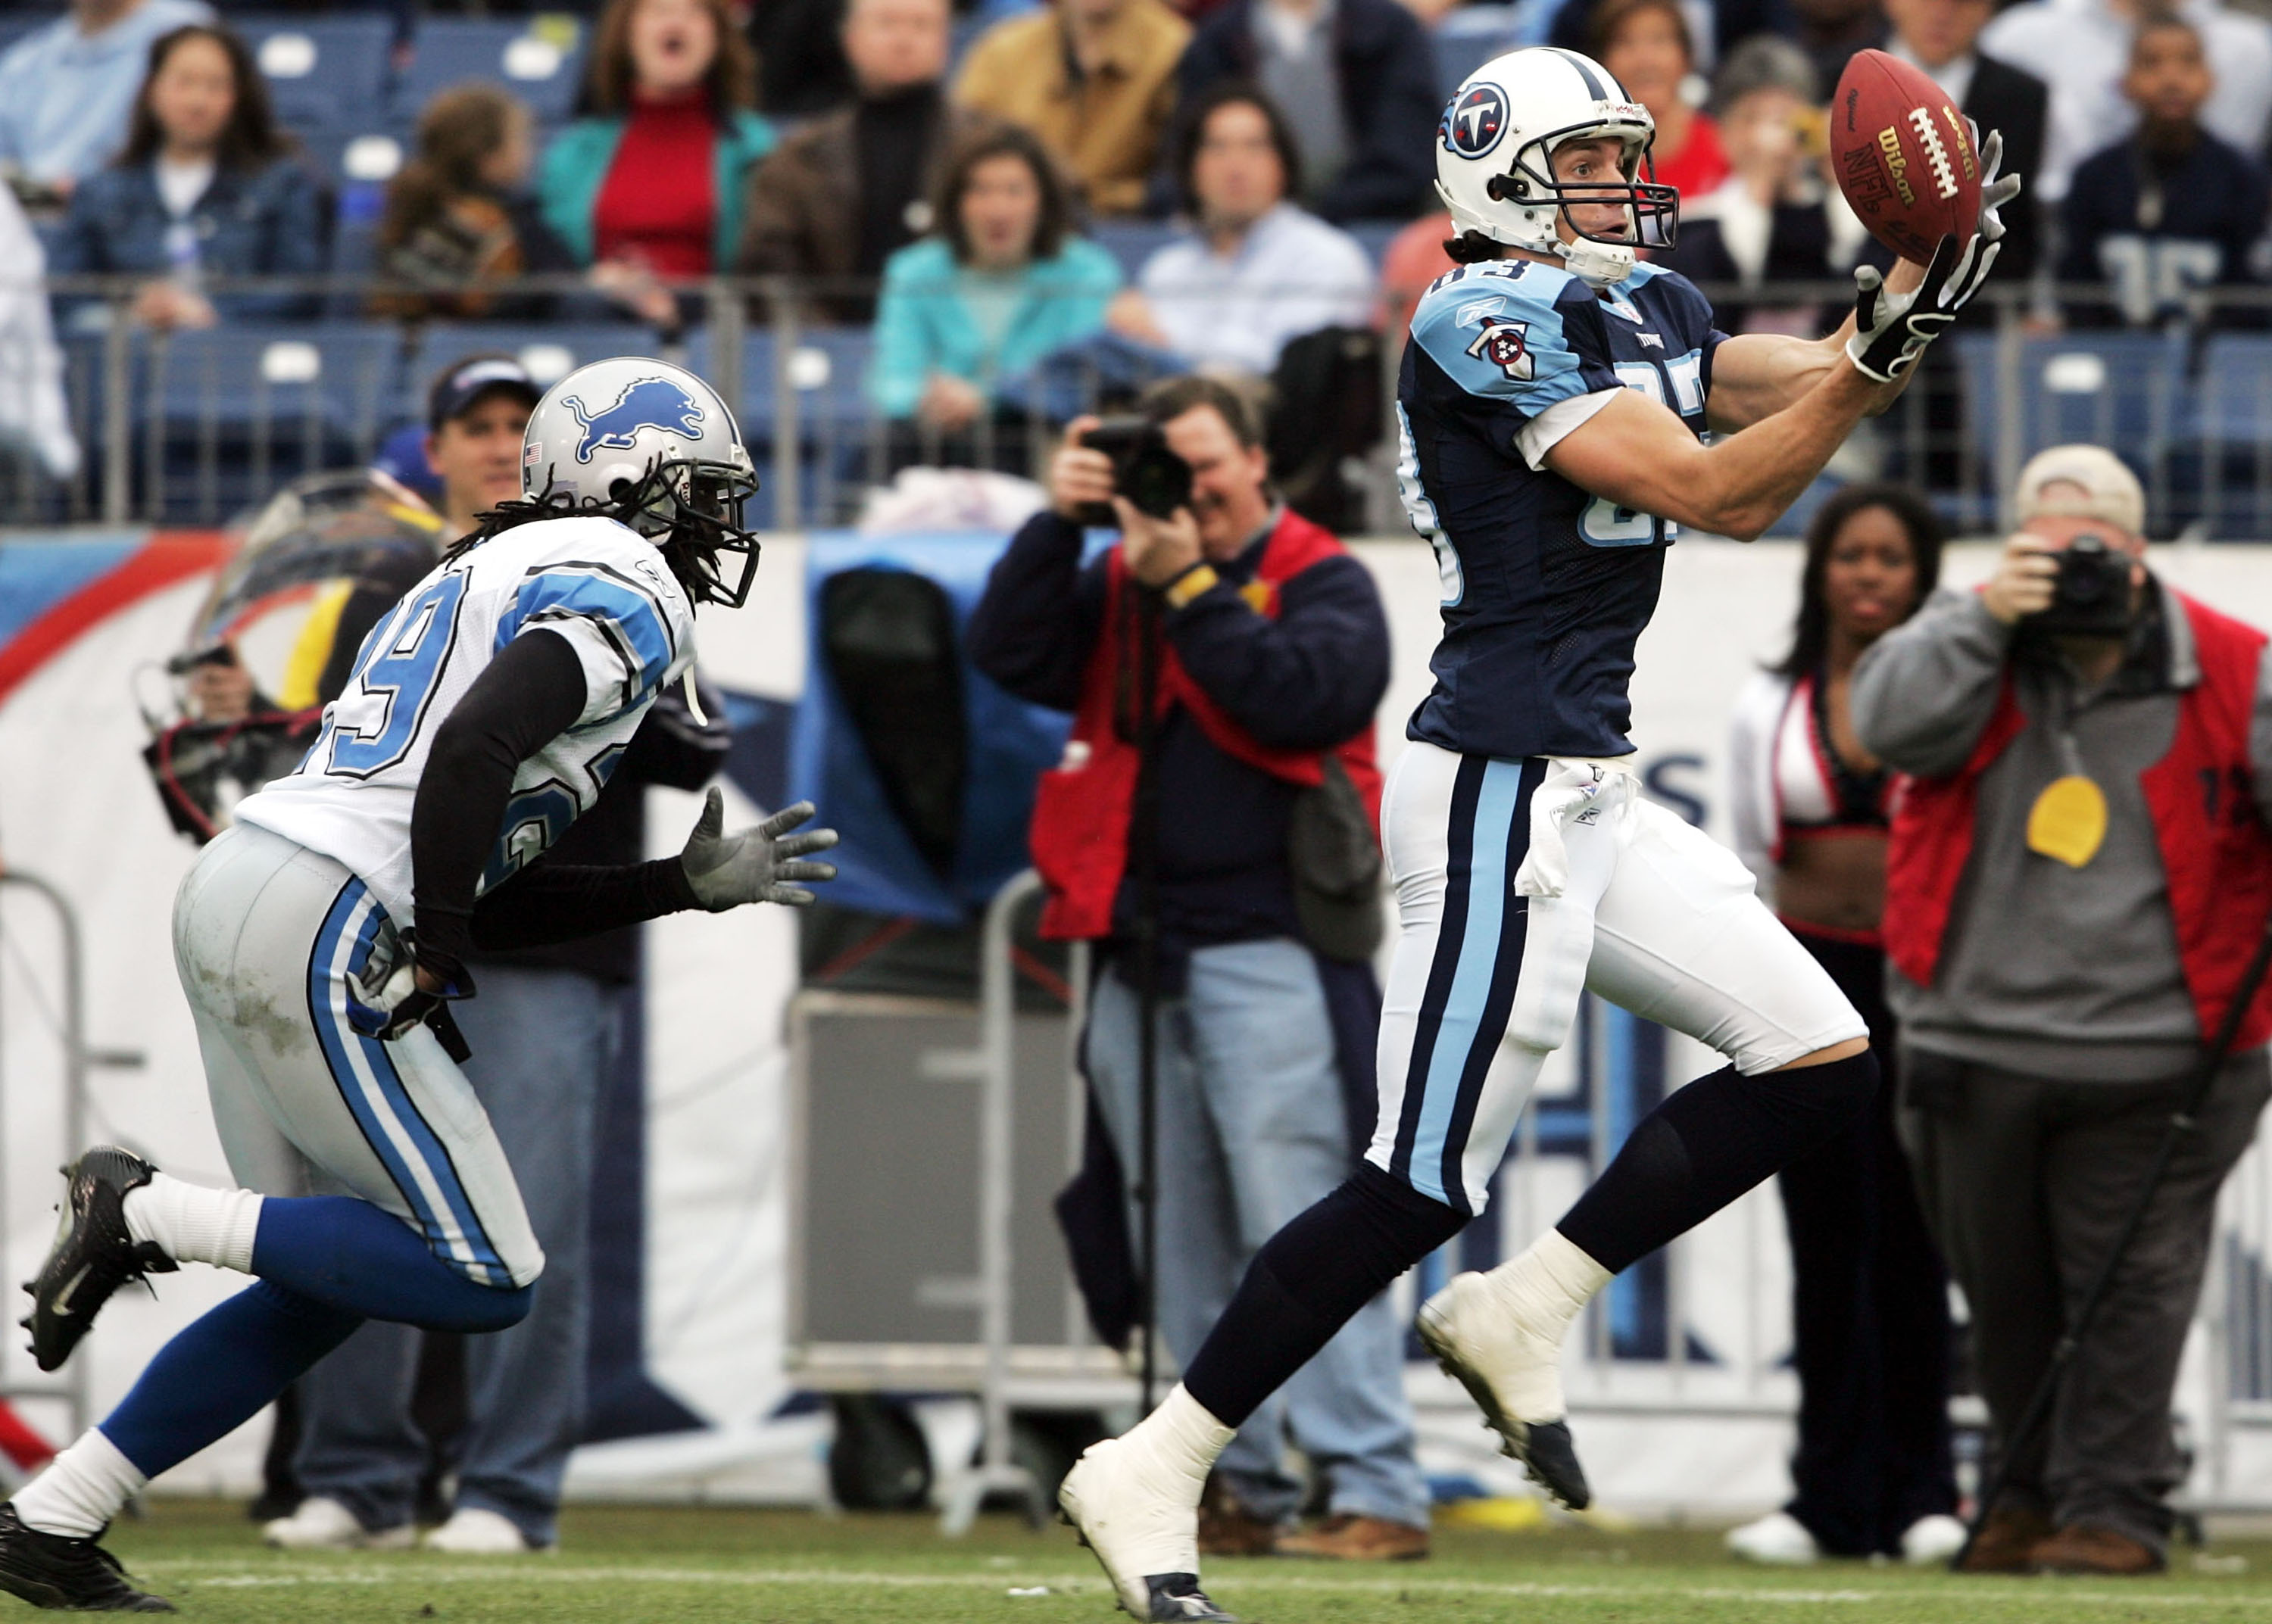 NASHVILLE, TN - JANUARY 2:  Drew Bennett #83 of the Tennessee Titans catches a touchdown pass against the Detroit Lions on January 2, 2005 at The Coliseum in Nashville, Tennessee.  (Photo by Andy Lyons/Getty Images)